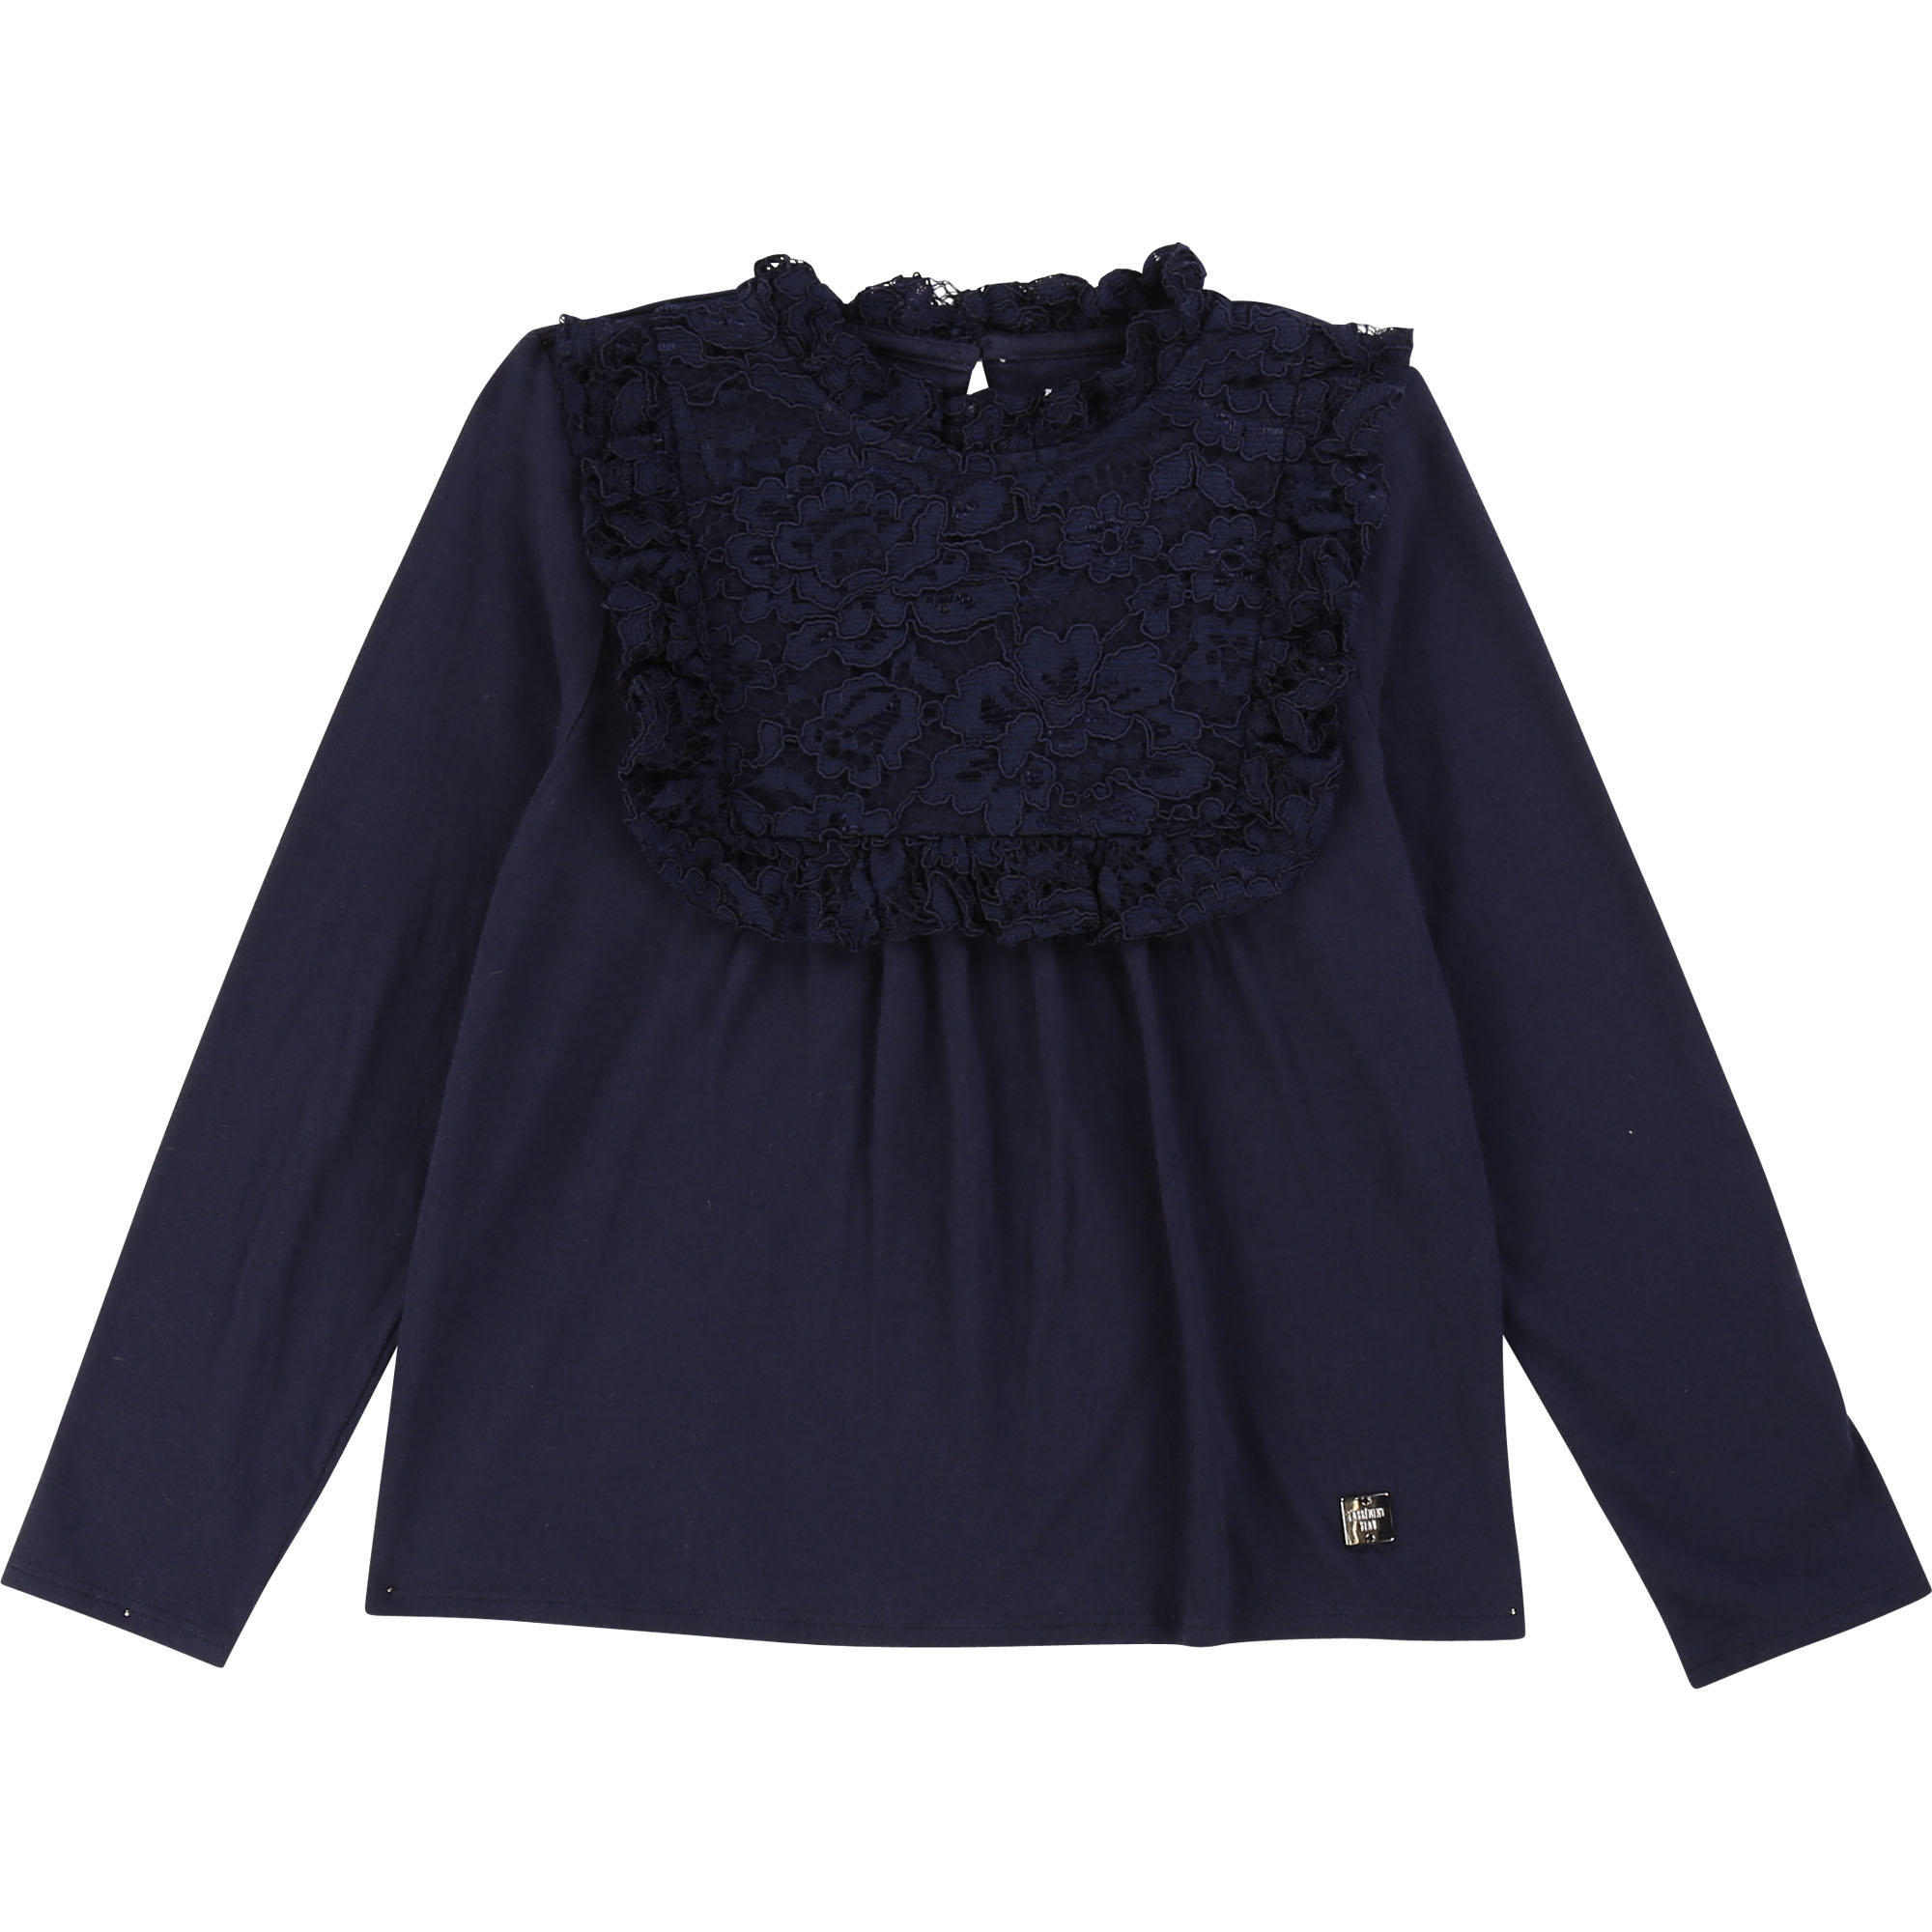 Lace formal T-shirt CARREMENT BEAU for GIRL